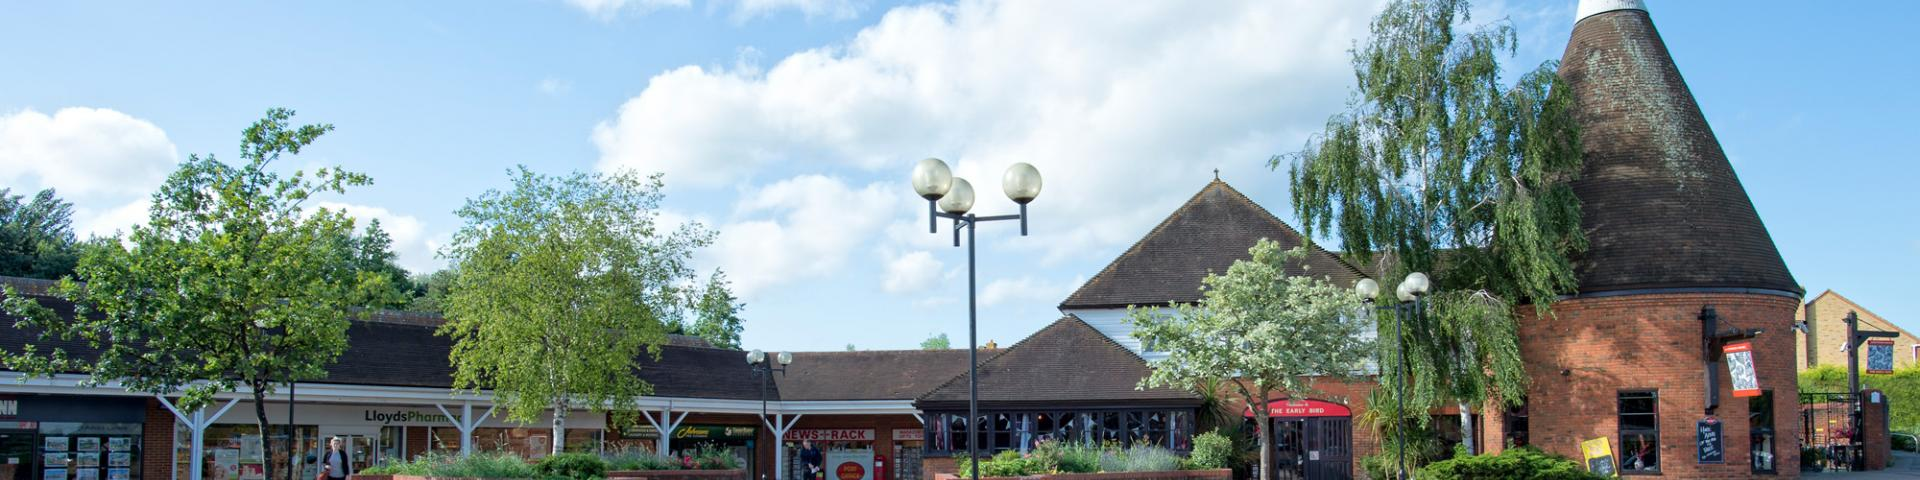 Early Bird, Grove Green, Maidstone